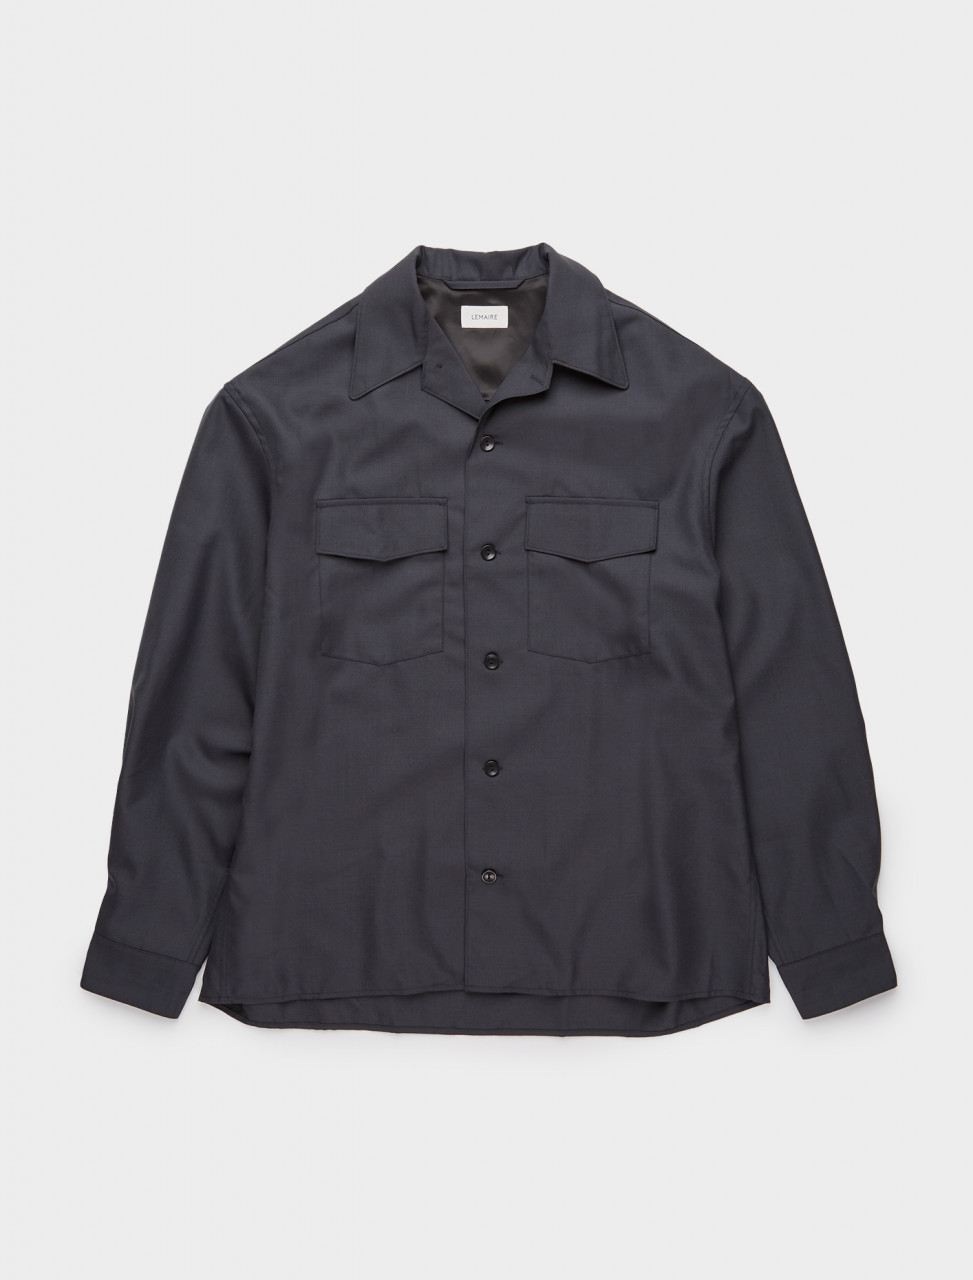 218-X-203-SH153-LF414-966 LEMAIRE CONVERTIBLE COLLAR SHIRT ANTHRACITE